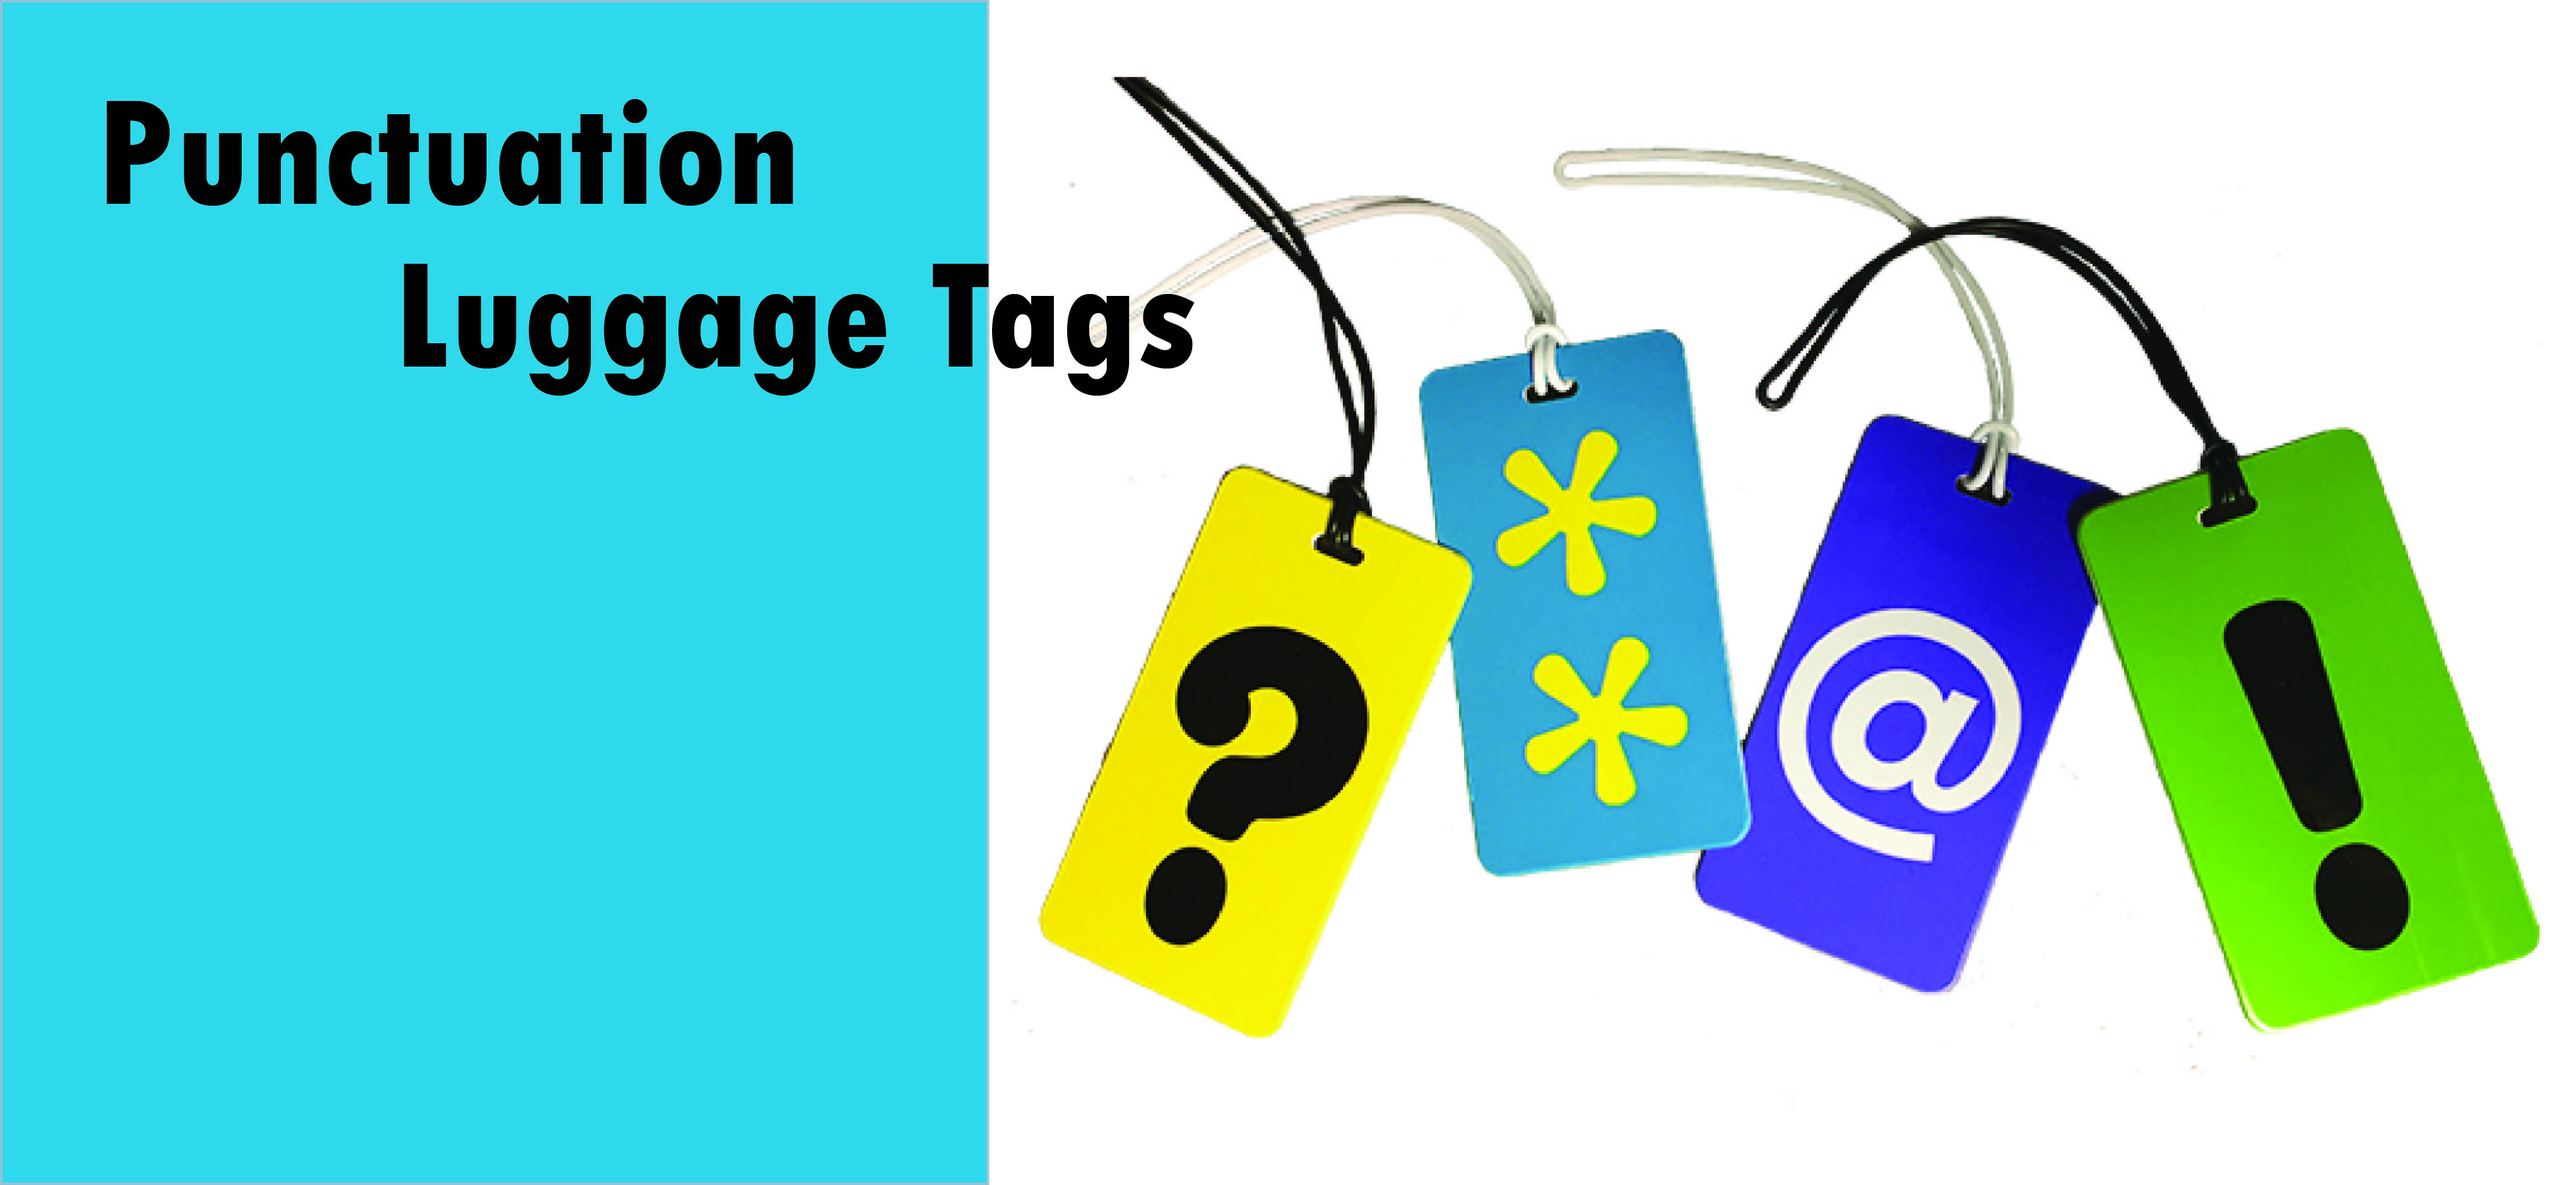 Punctuation luggage tags